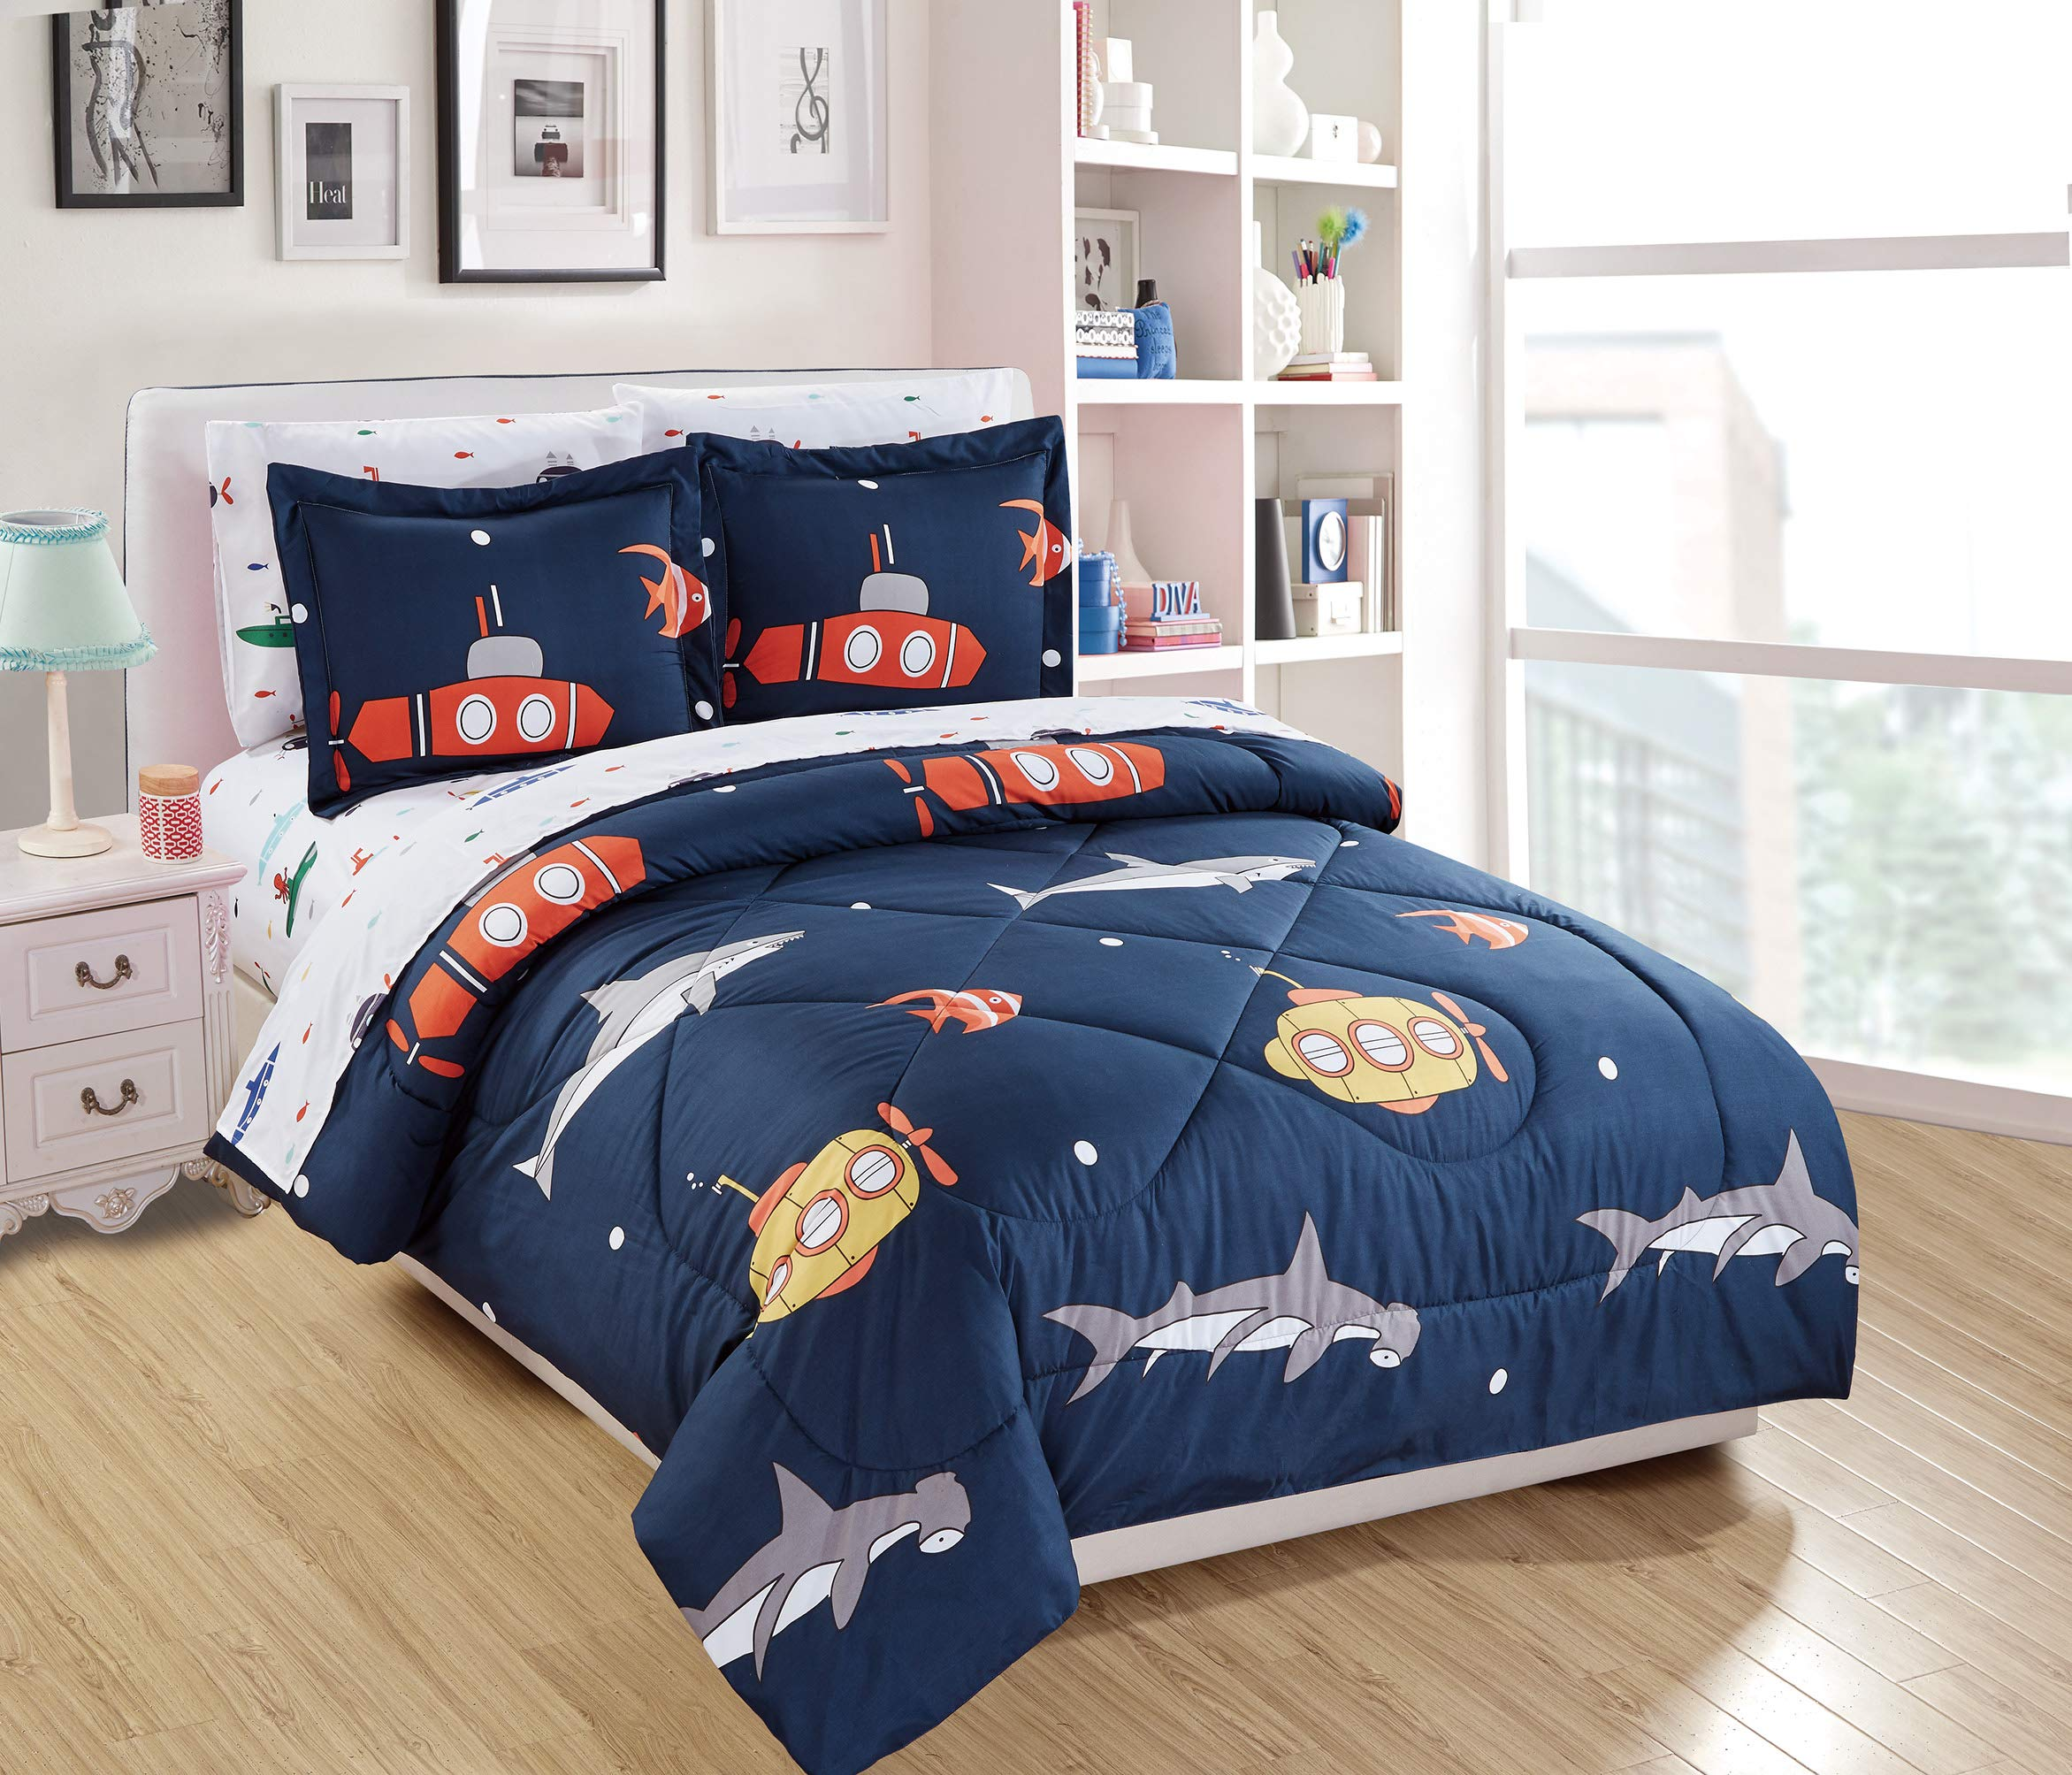 Mk Home 7pc Full Size Comforter Set for Boys Submarine Sharks Navy Blue Orange White Grey New